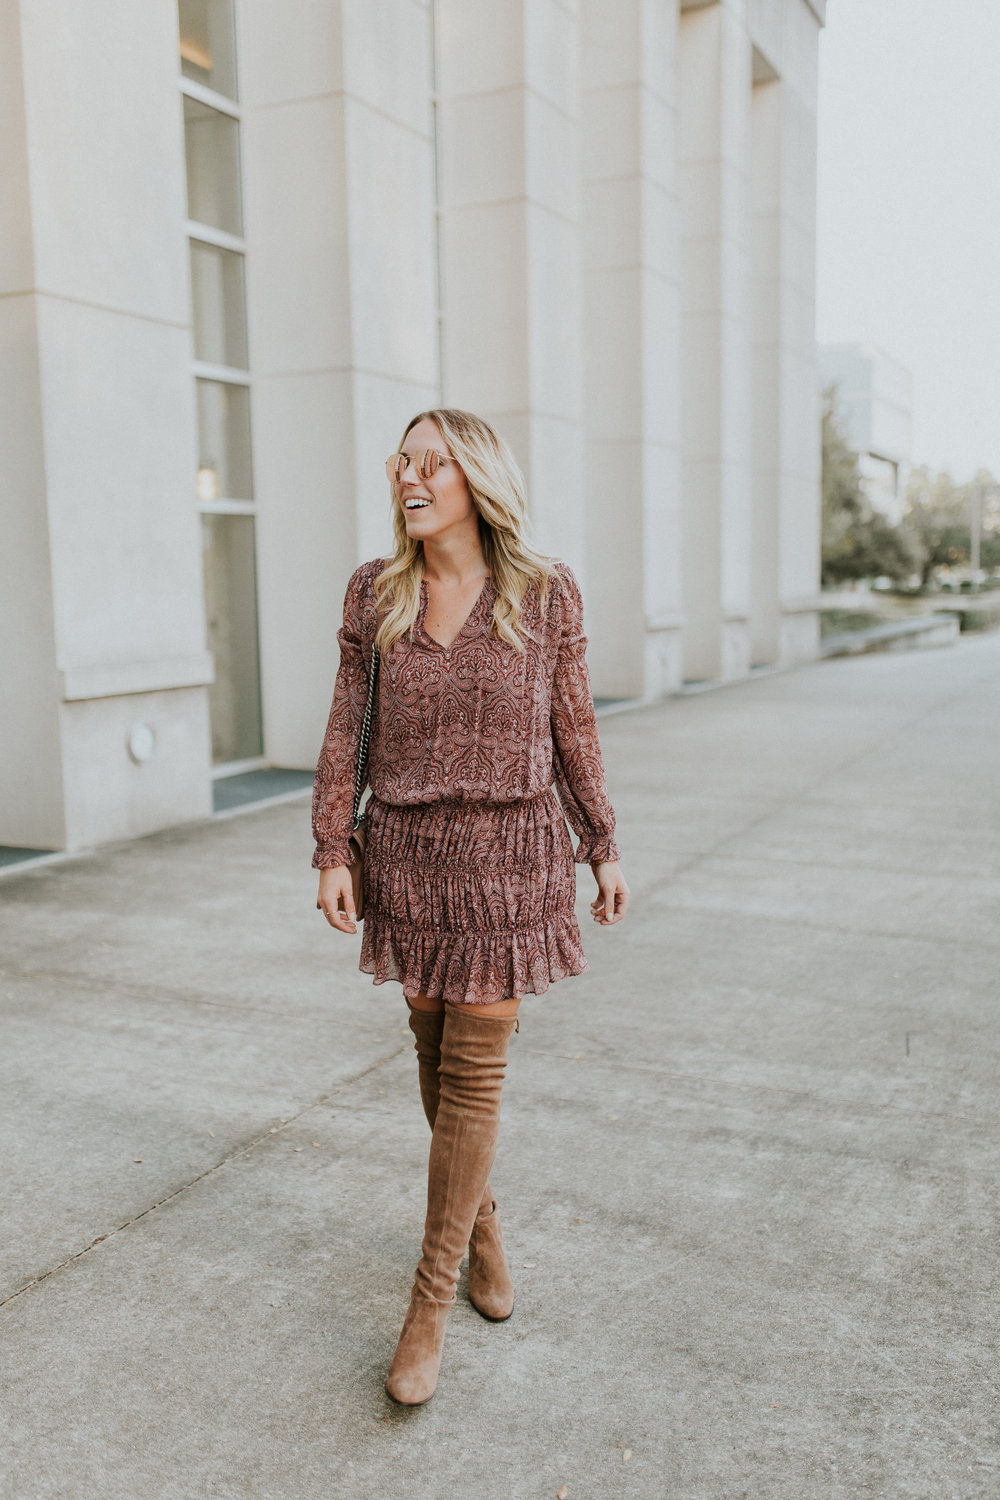 Blogger Gracefully Taylored in Joie Dress and Stuart Weitzman Boots(9).jpg